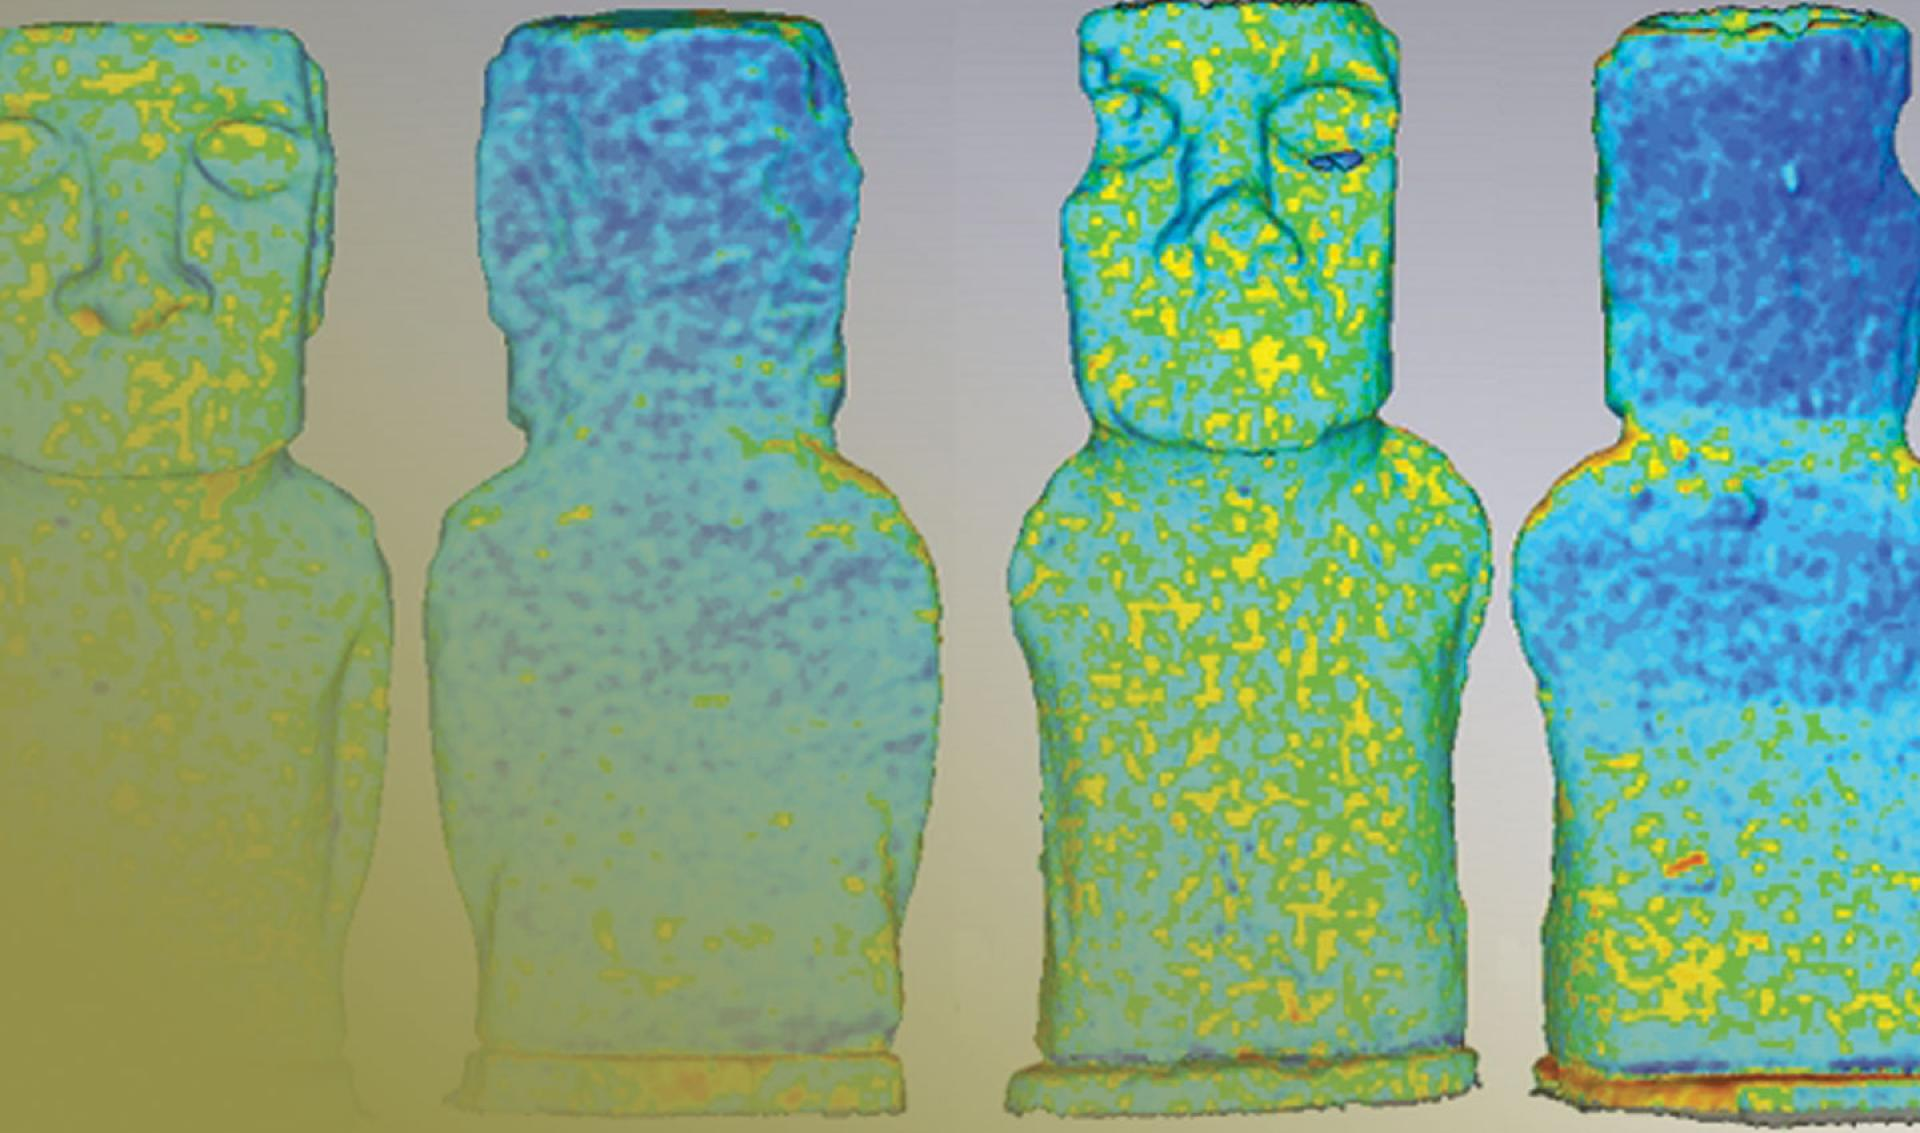 3D Scanning easter island moai with geomagic